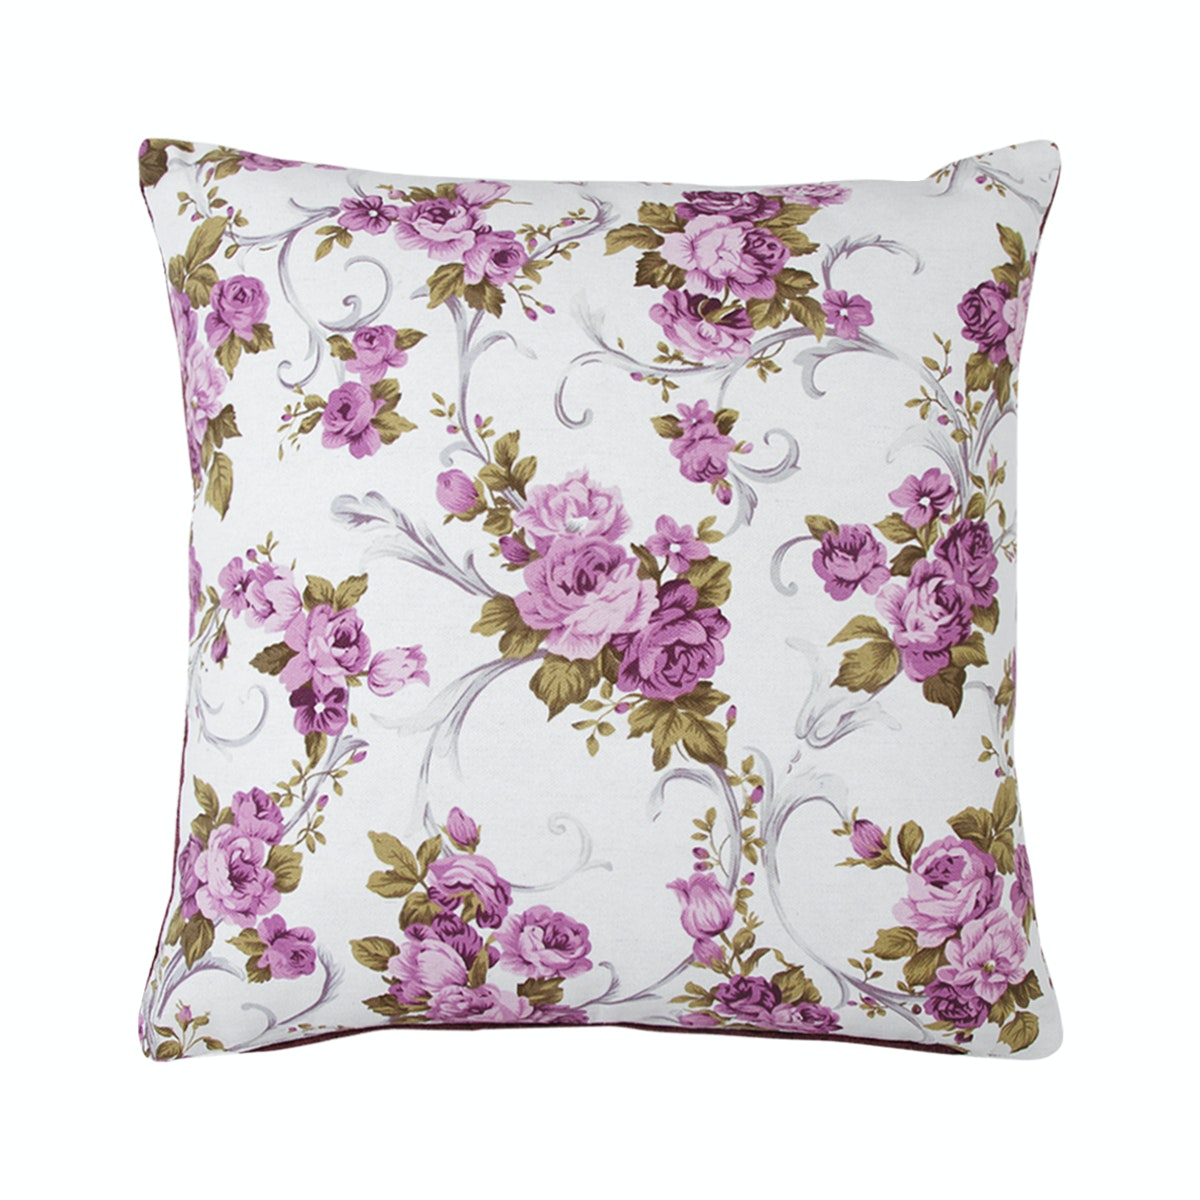 Le Atelier Montrose Purple Cushion Cover 45x45cm